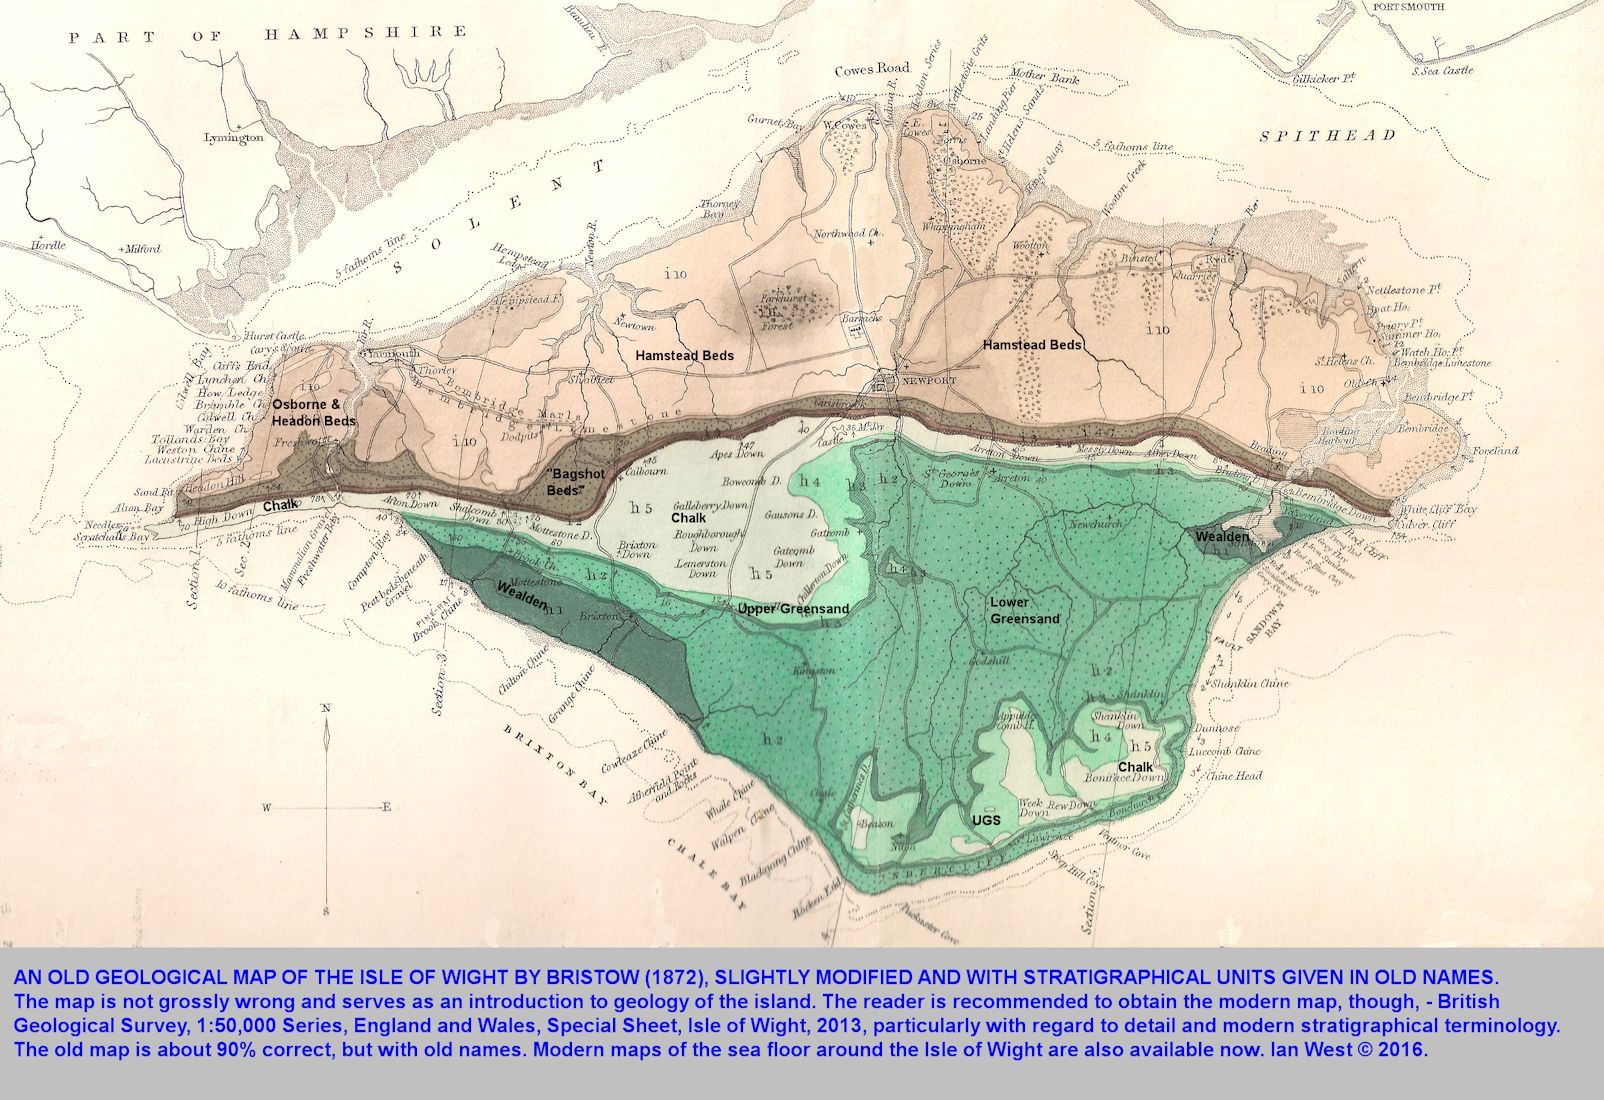 An old geological map of the Isle of Wight, showing the structure and general geology, and still relevant for introductory purposes